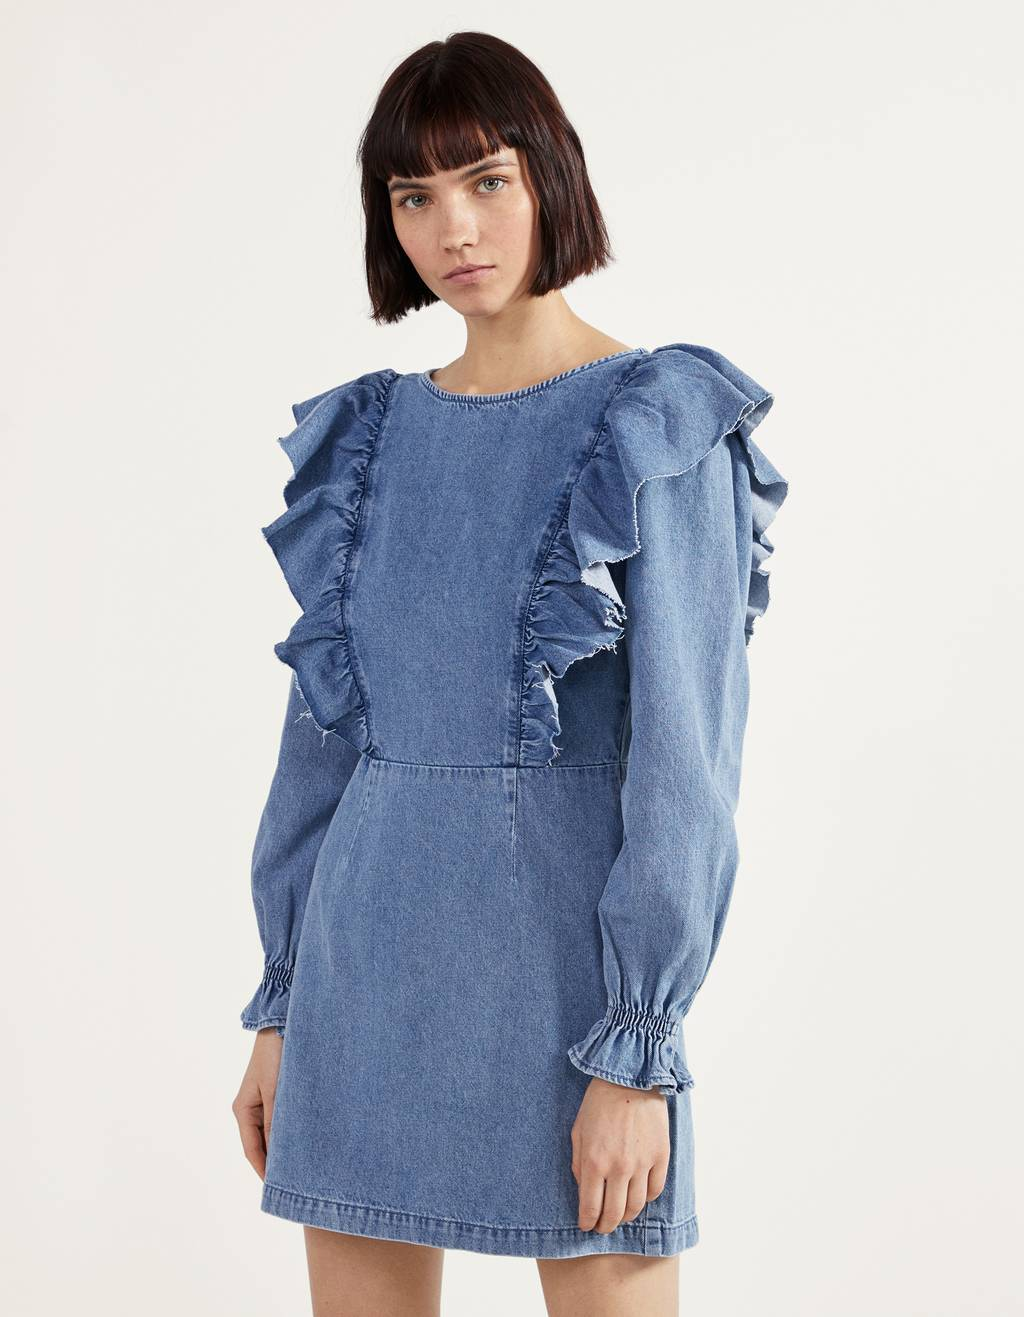 Denim dress with frills